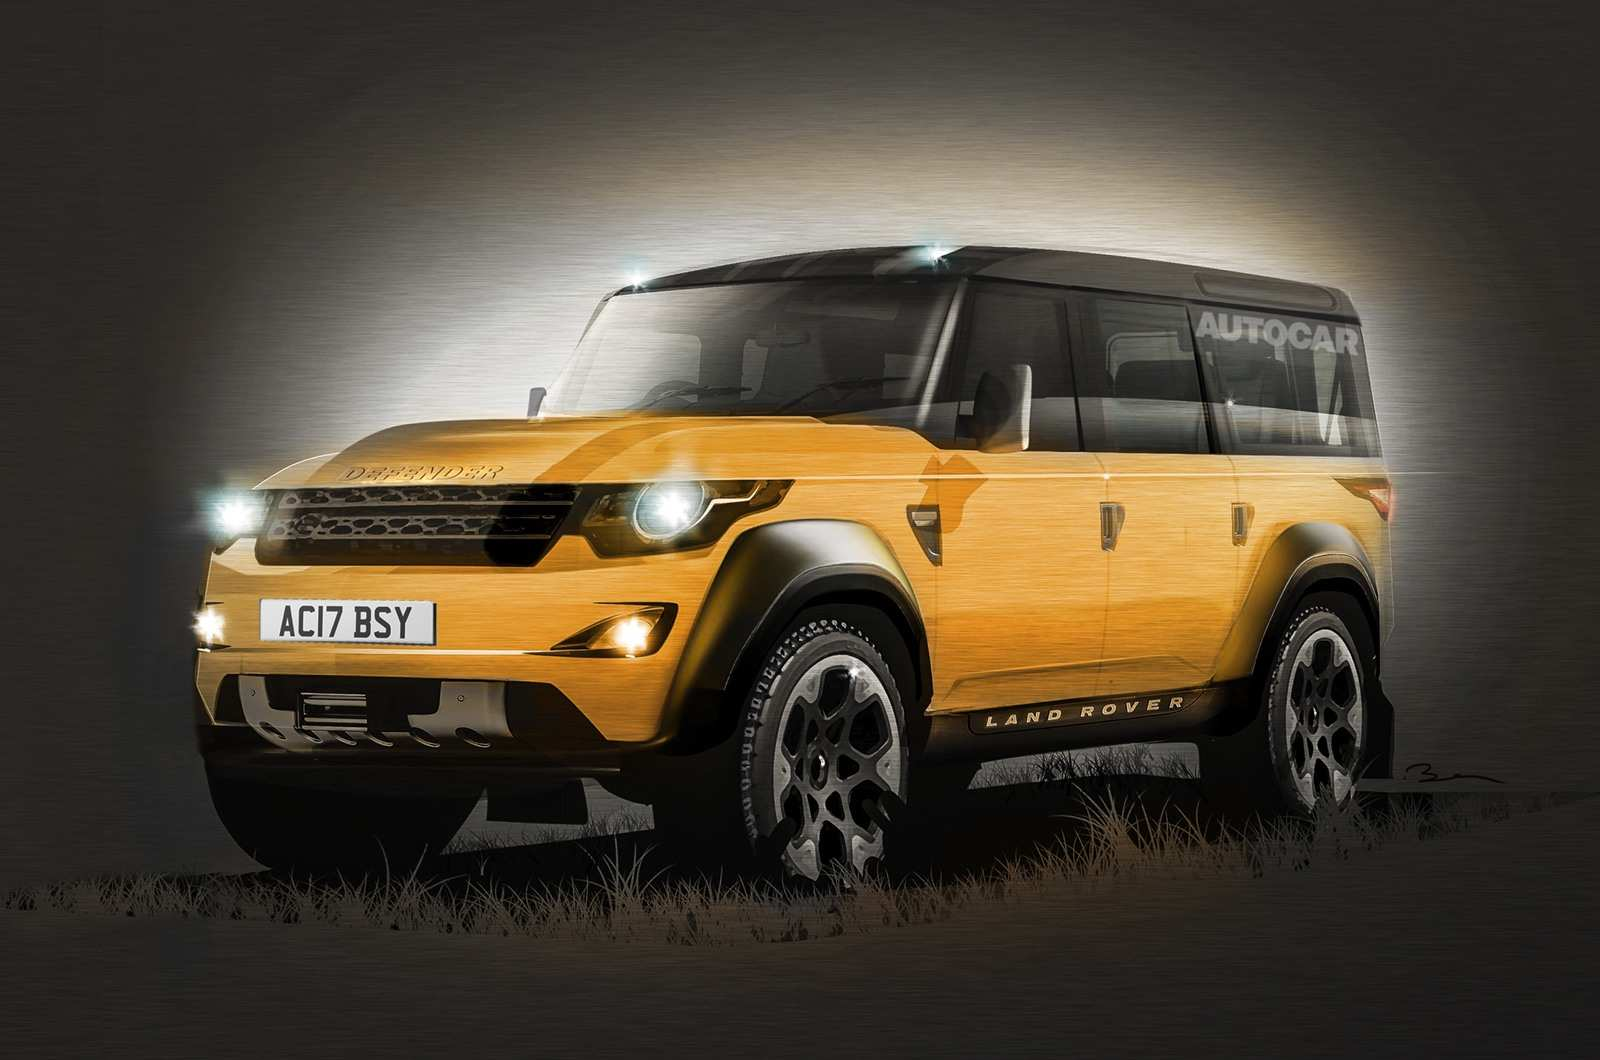 98 Concept of 2019 Land Rover Defender Photos with 2019 Land Rover Defender